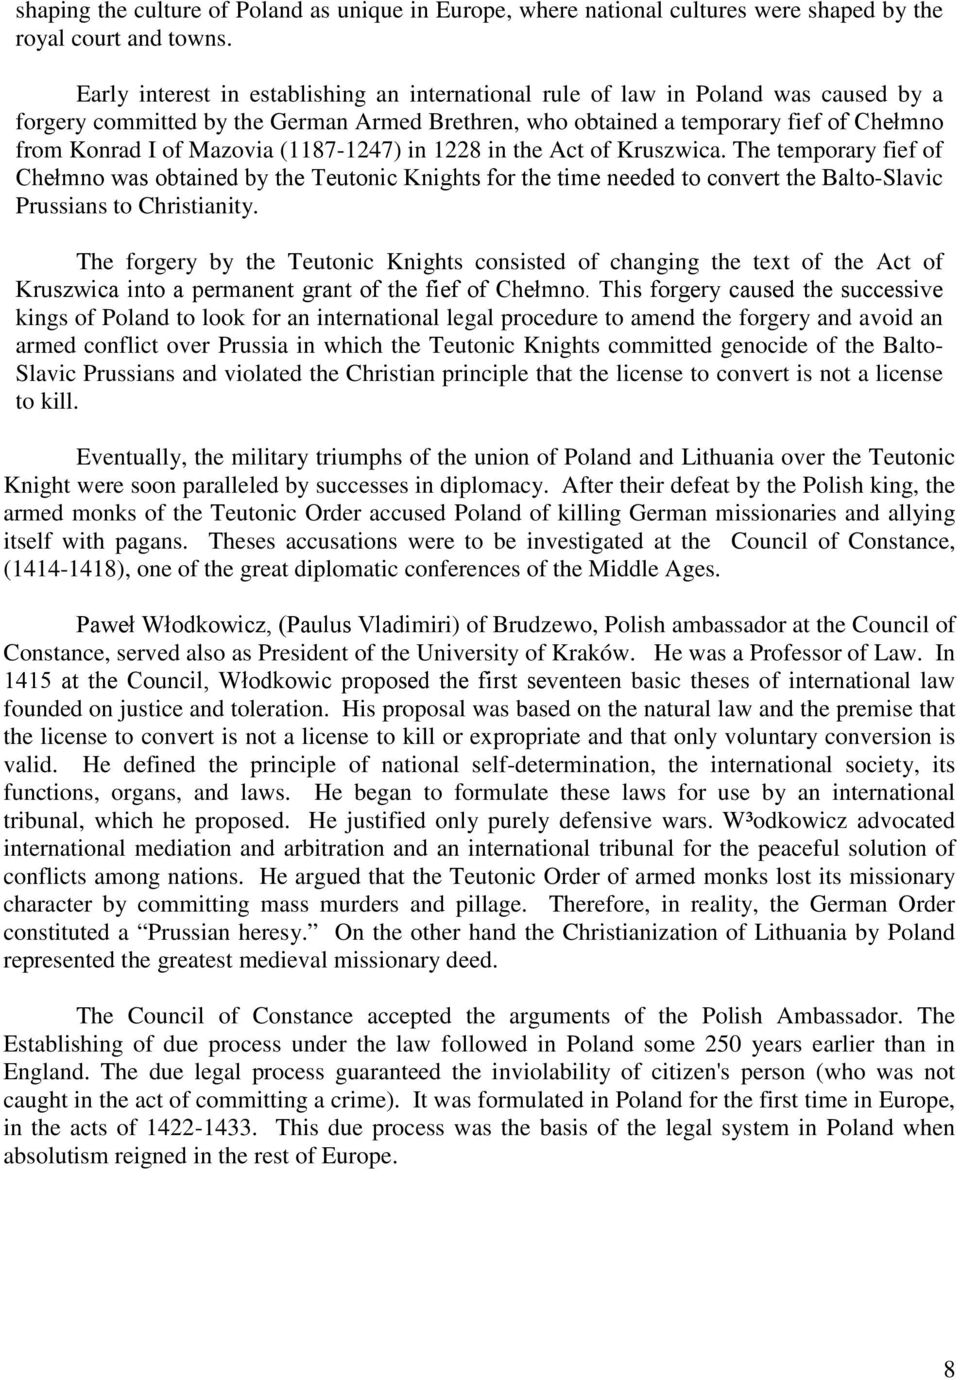 (1187-1247) in 1228 in the Act of Kruszwica. The temporary fief of Chełmno was obtained by the Teutonic Knights for the time needed to convert the Balto-Slavic Prussians to Christianity.